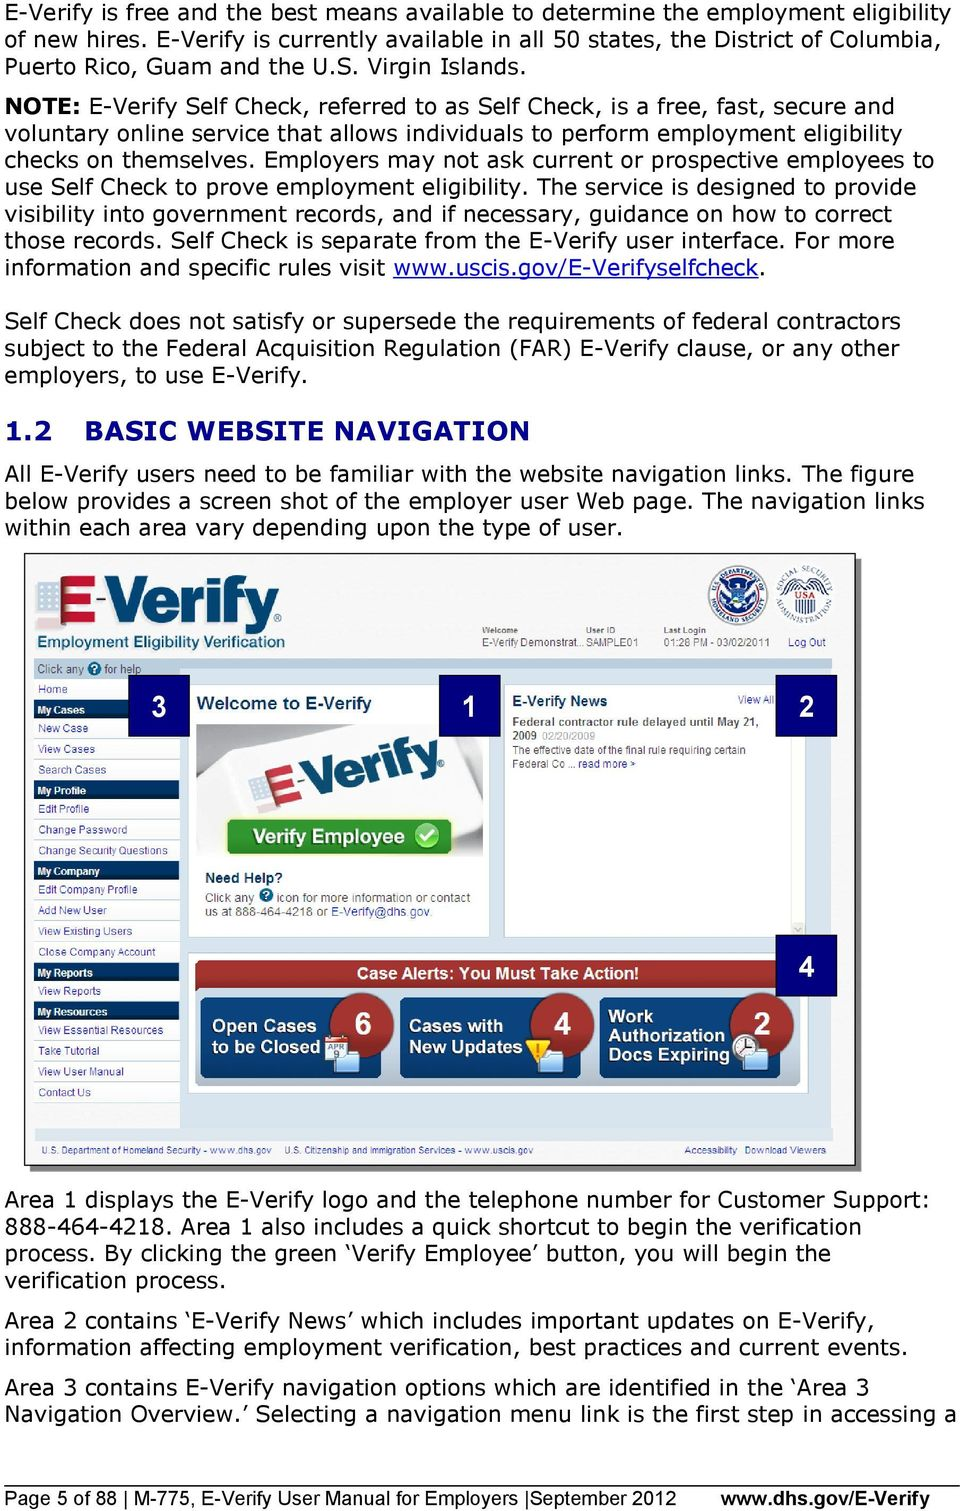 NOTE: E-Verify Self Check, referred to as Self Check, is a free, fast, secure and voluntary online service that allows individuals to perform employment eligibility checks on themselves.